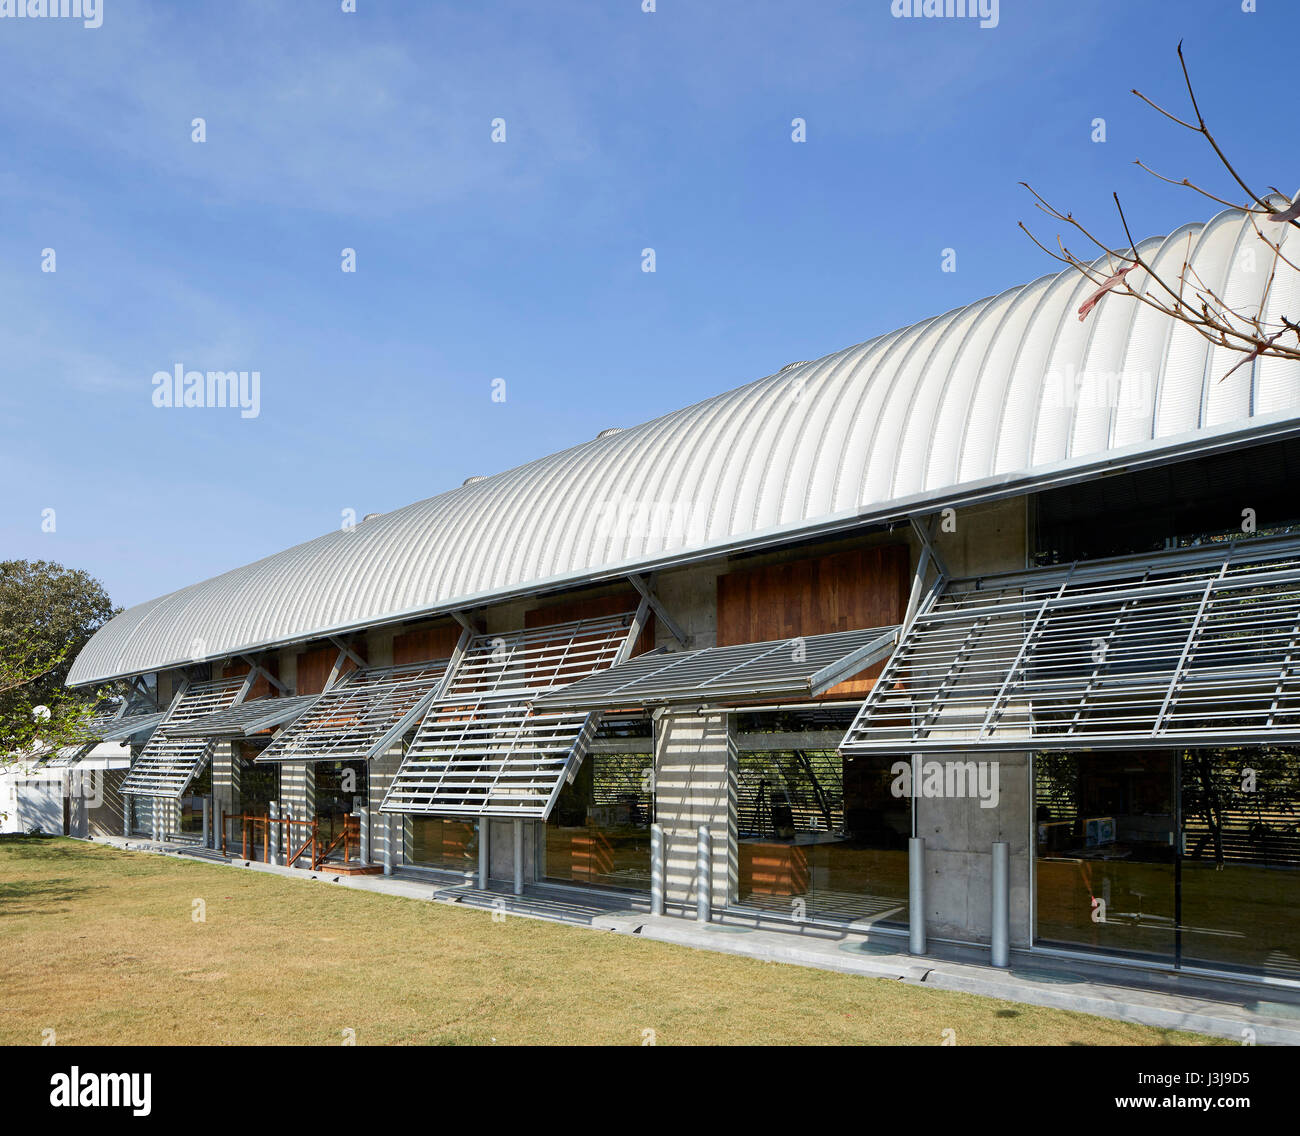 Garden side exterior view. The Pool Studio of Matharoo Associates, Ahmedabad, India. Architect: Matharoo Associates, - Stock Image